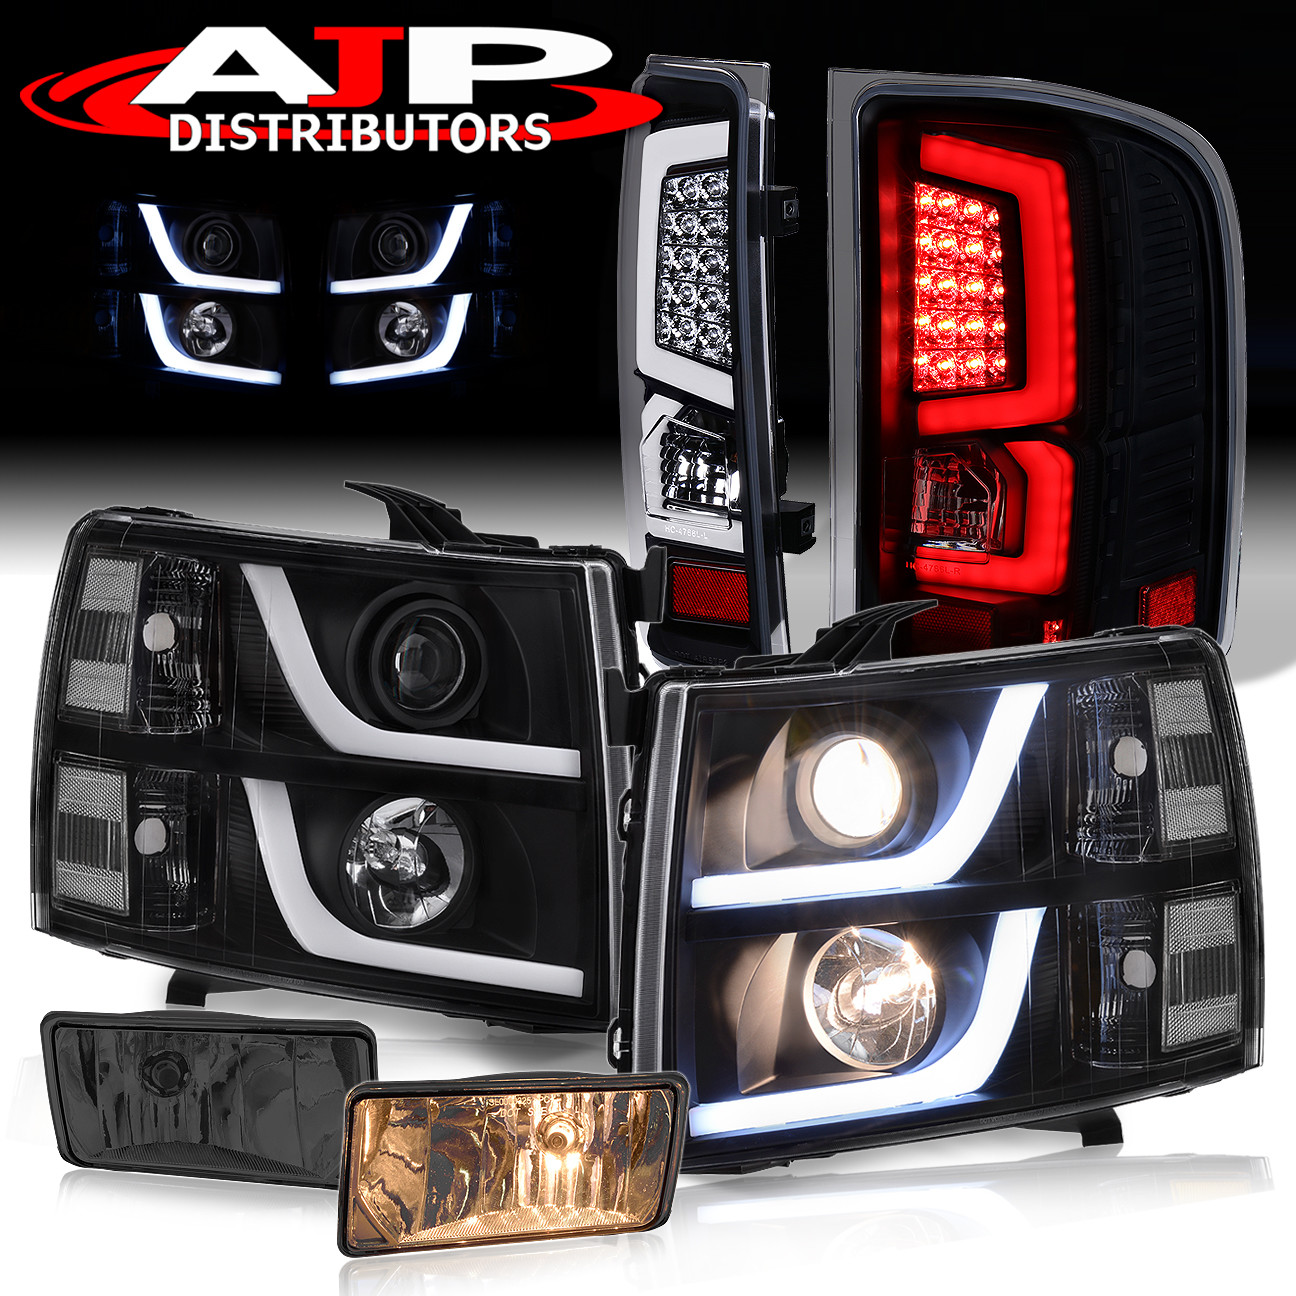 2003 2004 2005 2006 Suburban Tahoe 1500 2500 AJP Distributors LED DRL Headlights Head Lights Lamps For 1999 2000 2001 2002 Chevy Silverado //